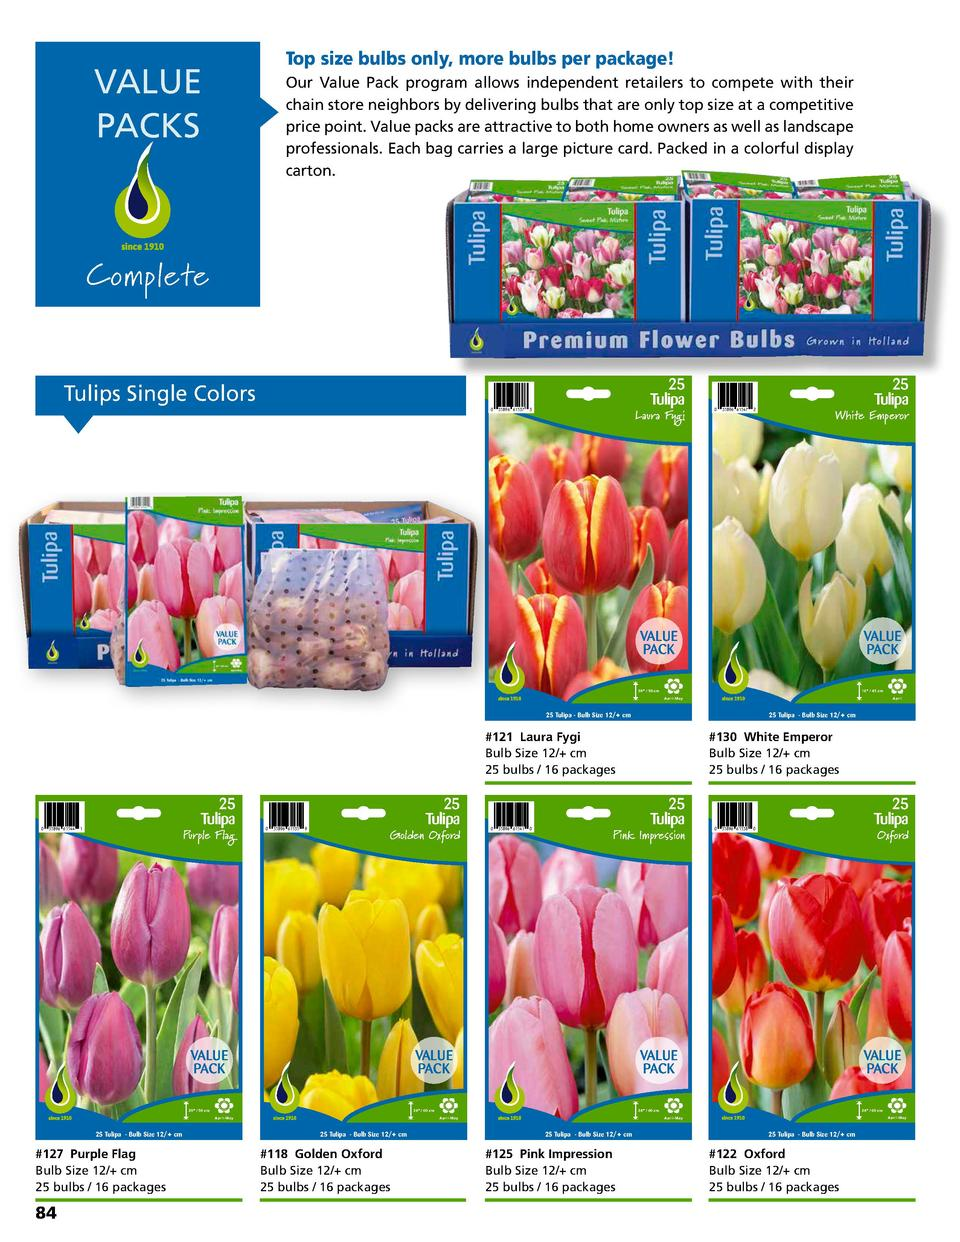 Top size bulbs only, more bulbs per package   VALUE PACKS  Our Value Pack program allows independent retailers to compete ...